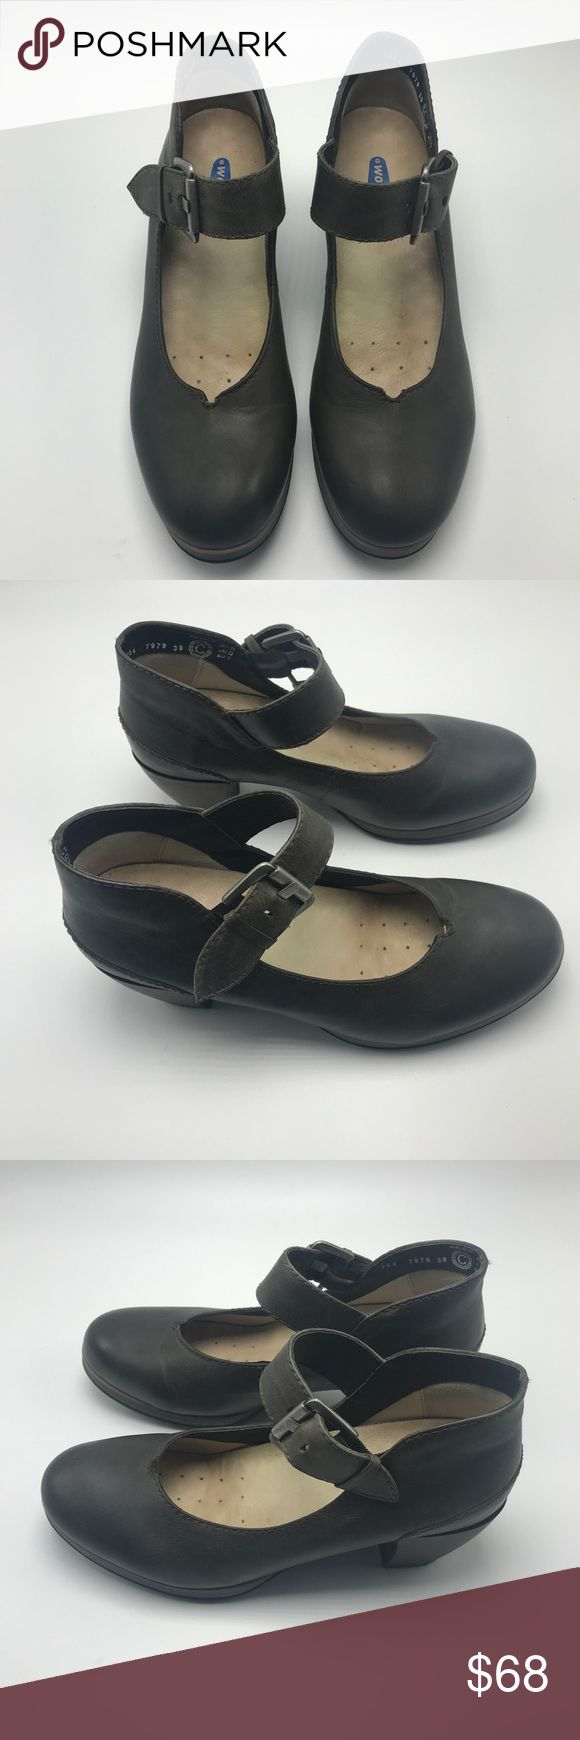 """Wolky Aya Vintage Gray Mary Jane Heels Sz 39 7.5 8 Absolutely beautiful, well- made shoes. These are in excellent used condition, only worn a few times. Heel height is about 2"""". See Wolky size chart for sizing questions. Wolky Shoes Heels"""